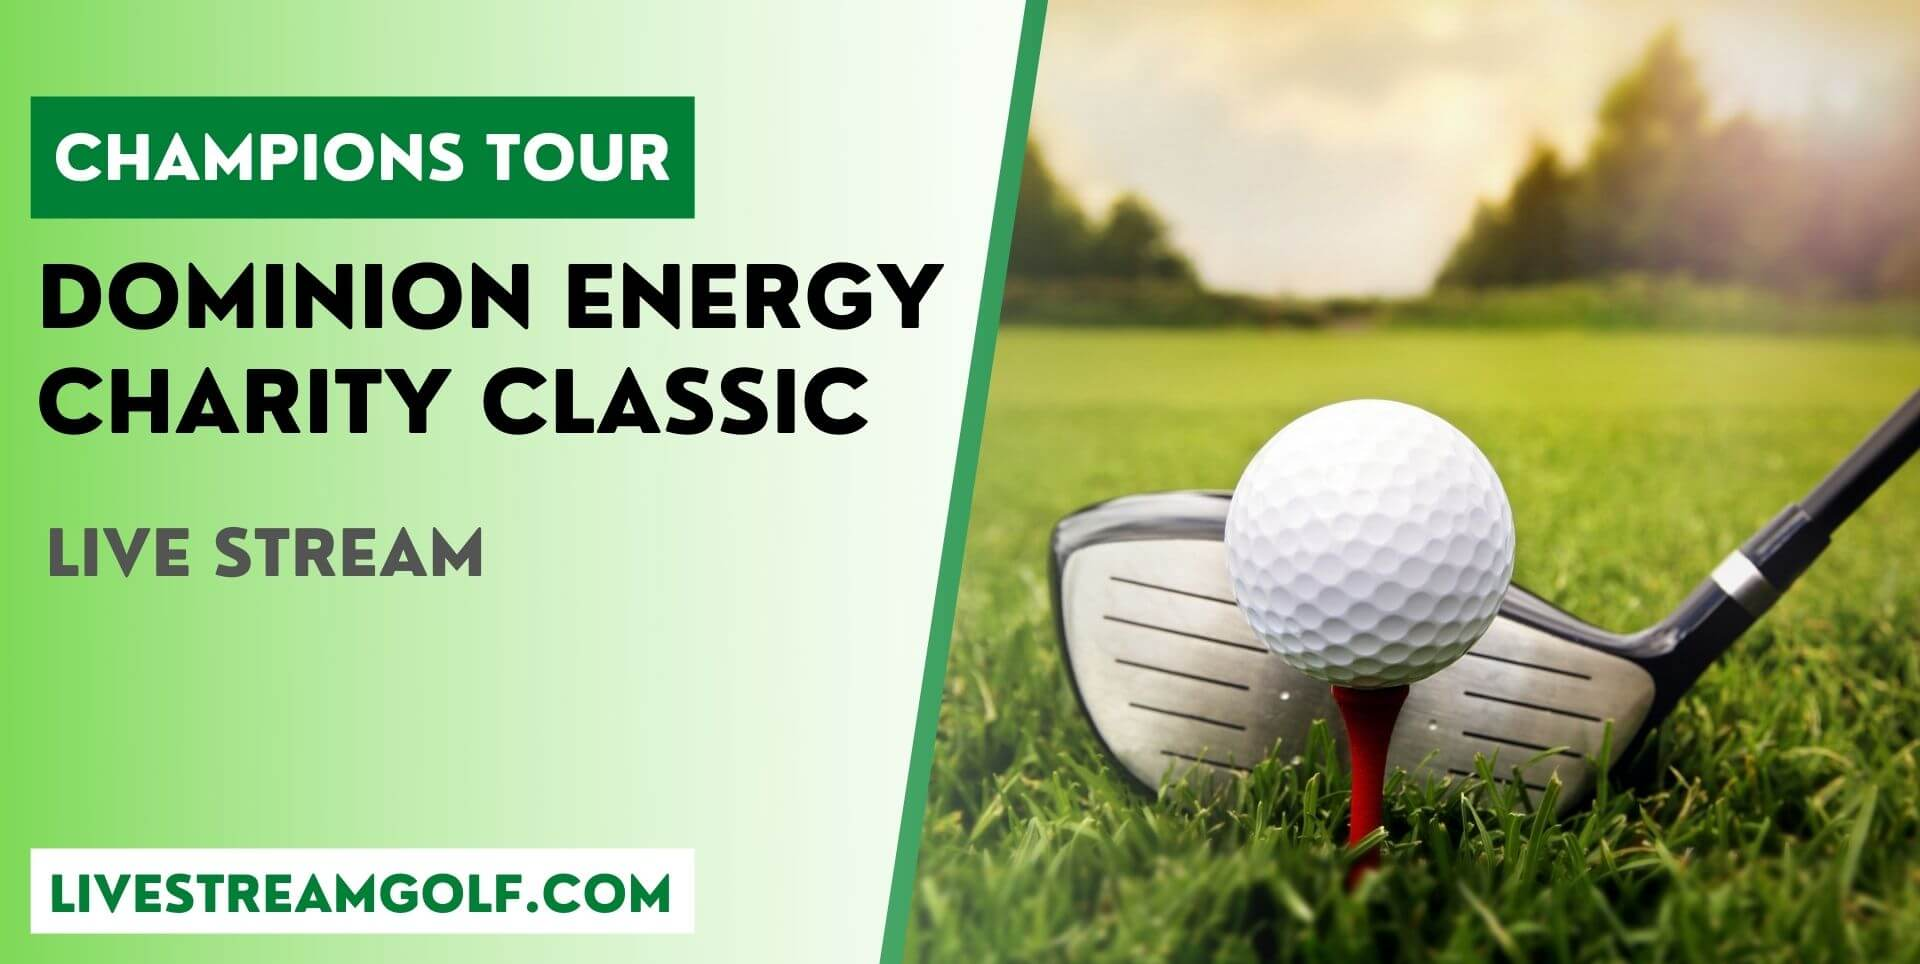 Dominion Energy Charity Classic Rd 1 Live Stream: Champions 2021